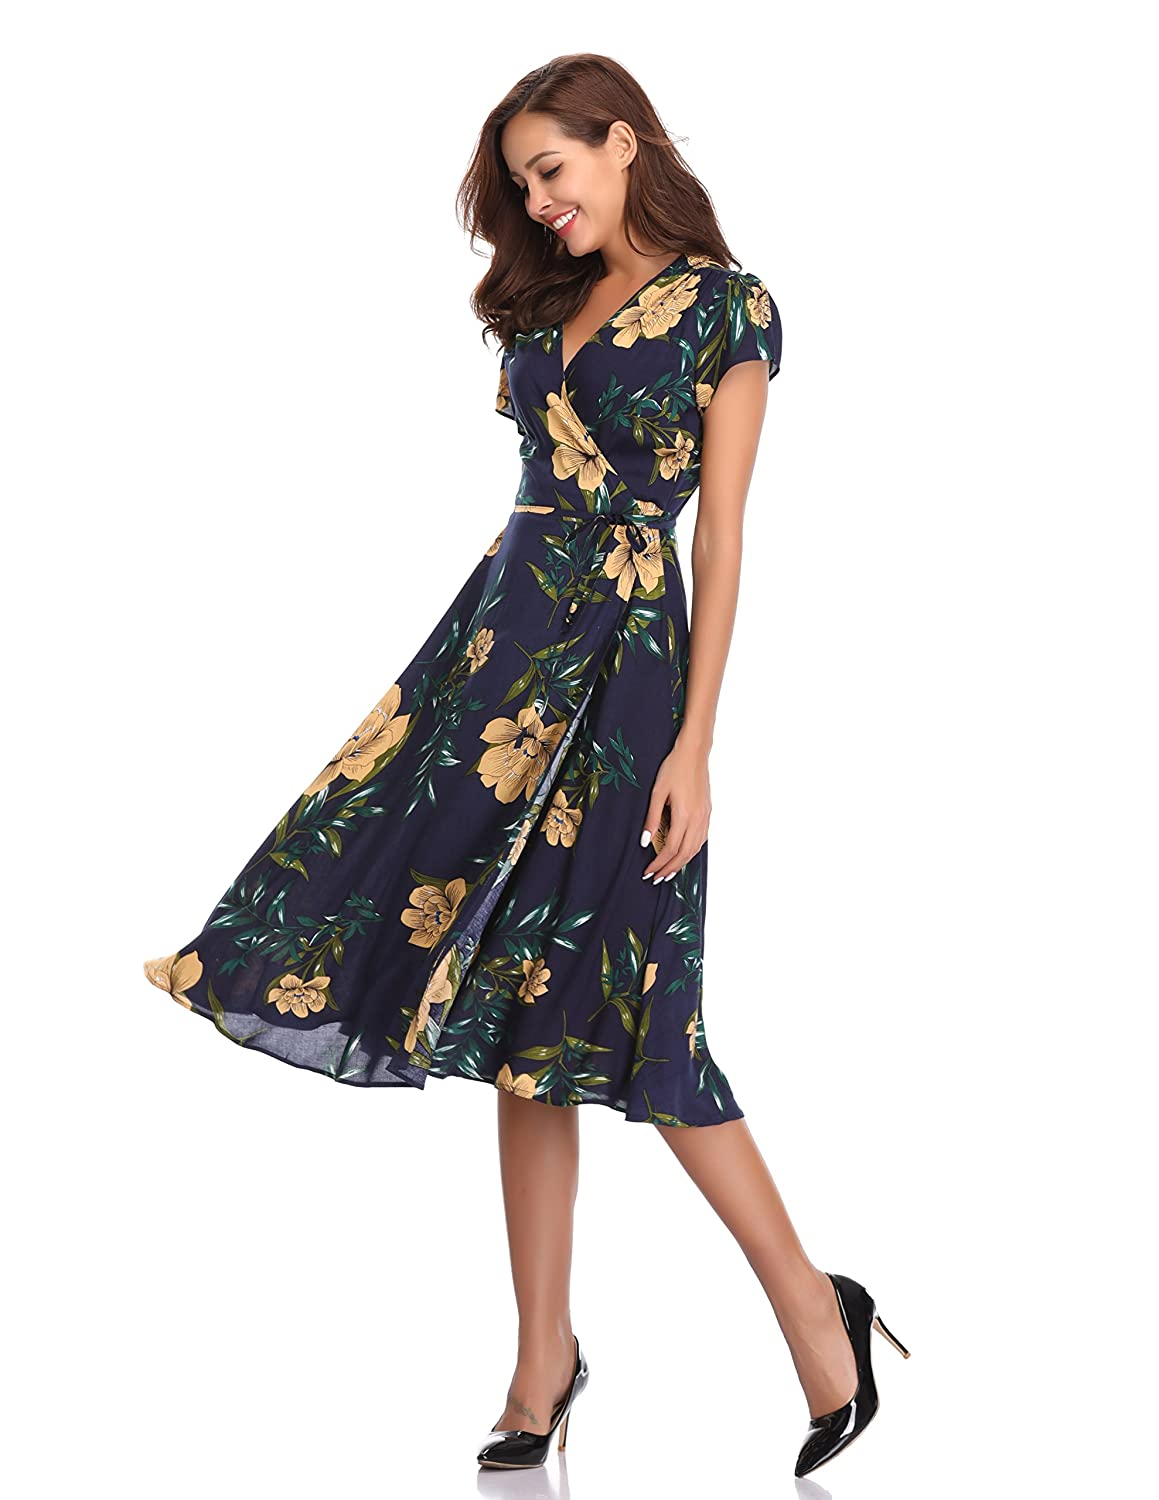 1495c61aa25d Floating Time Women's Floral Print Short Sleeve Midi Wrap Dress(L,  CF42123-2) at Amazon Women's Clothing store: